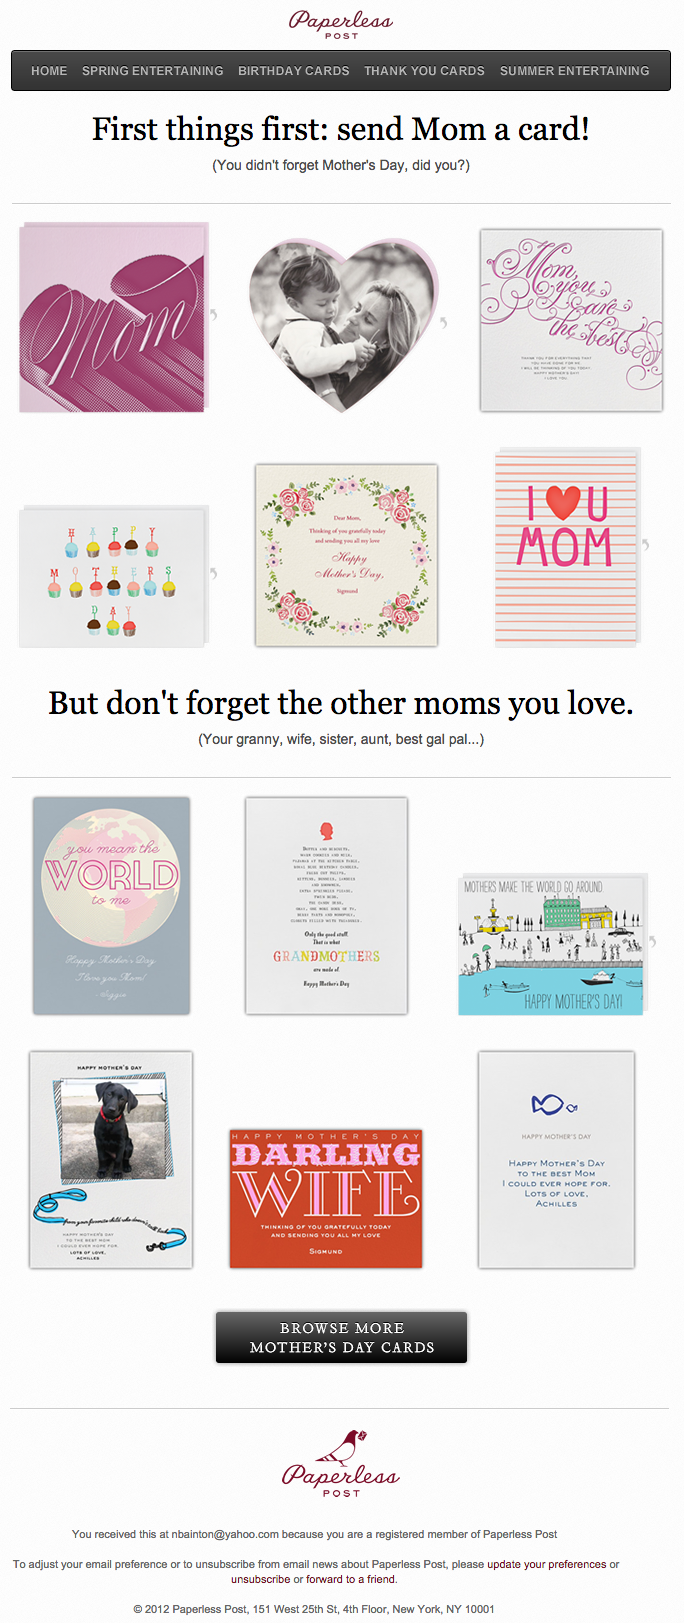 Email marketing campaign on Mother's Day by Paperless Post